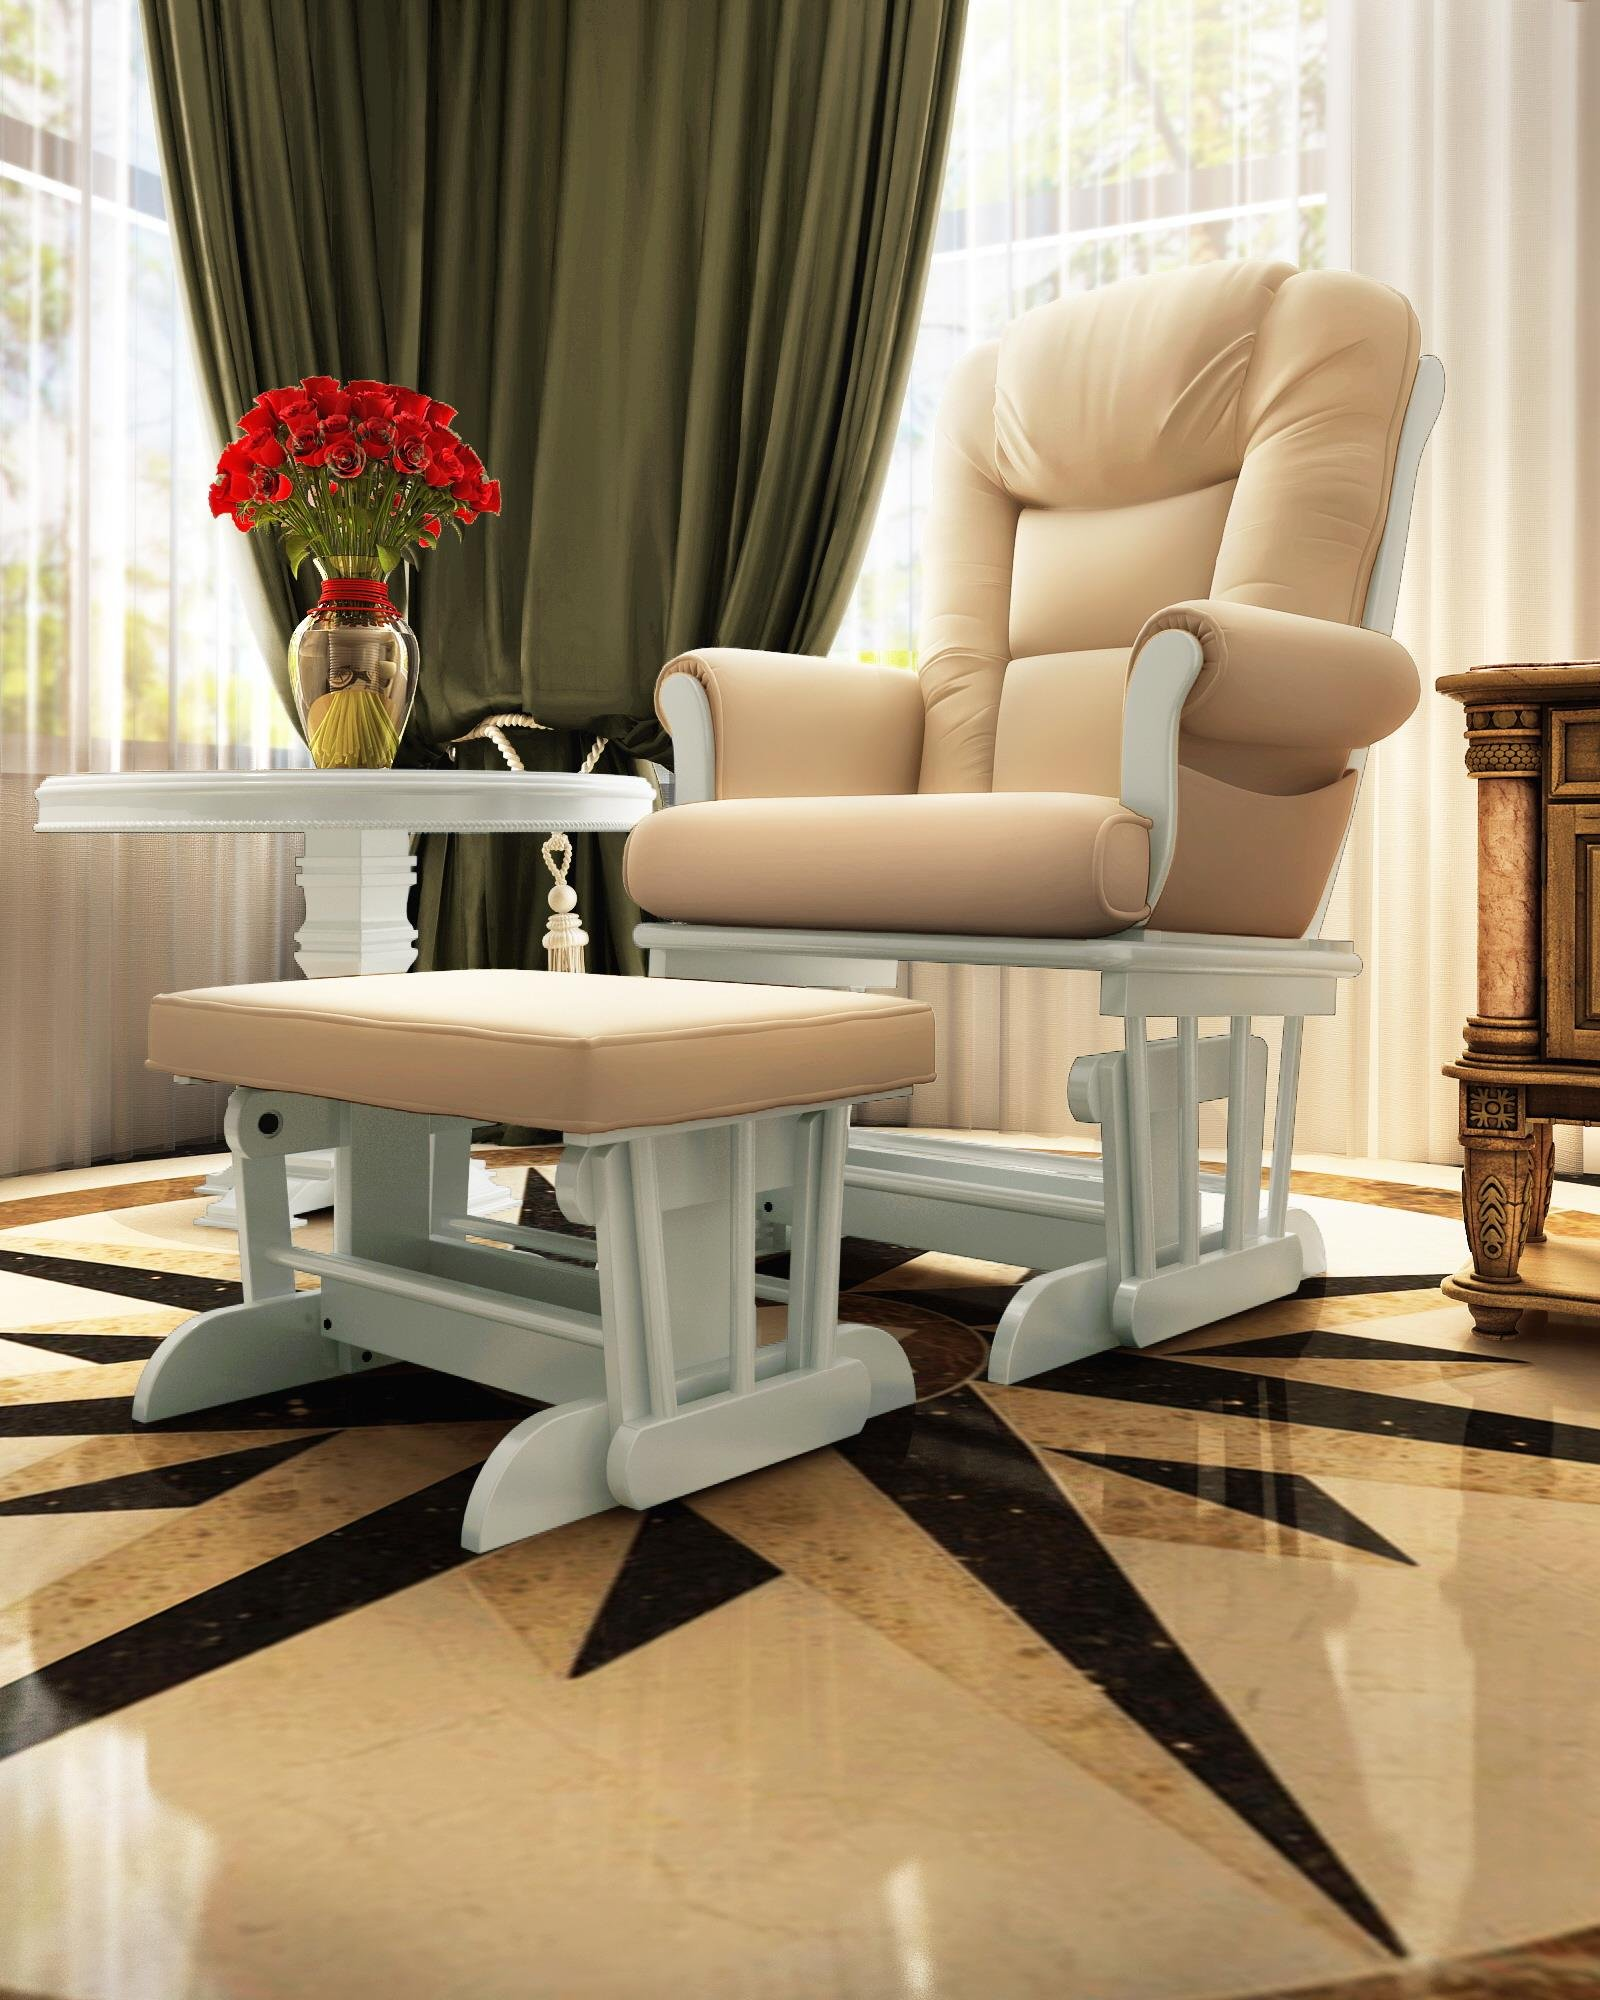 Naomi Home Deluxe Multiposition Sleigh Glider and Ottoman Set White/Cream by Naomi Home